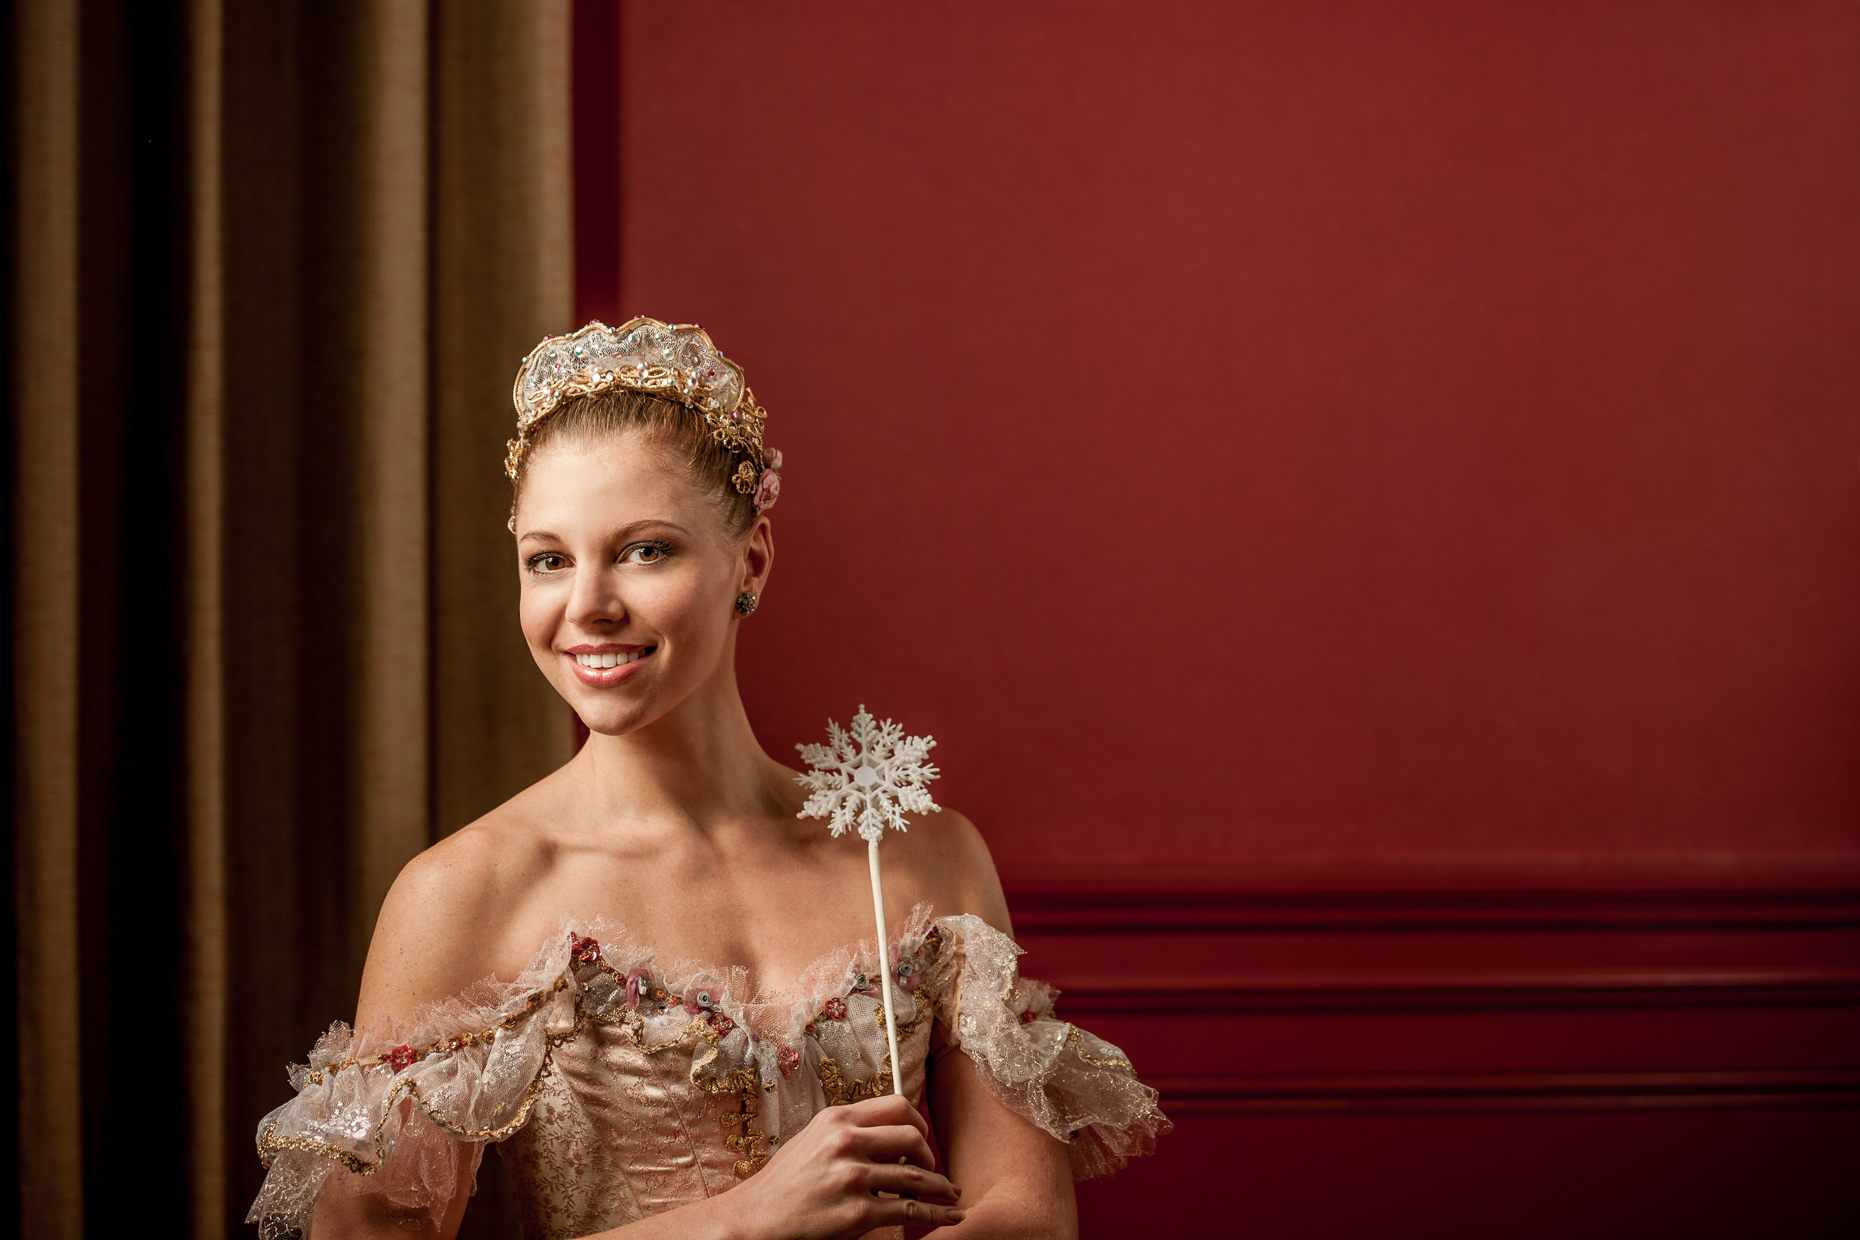 Portrait - Headshot of Sugar Plum Fairy - Nutcracker